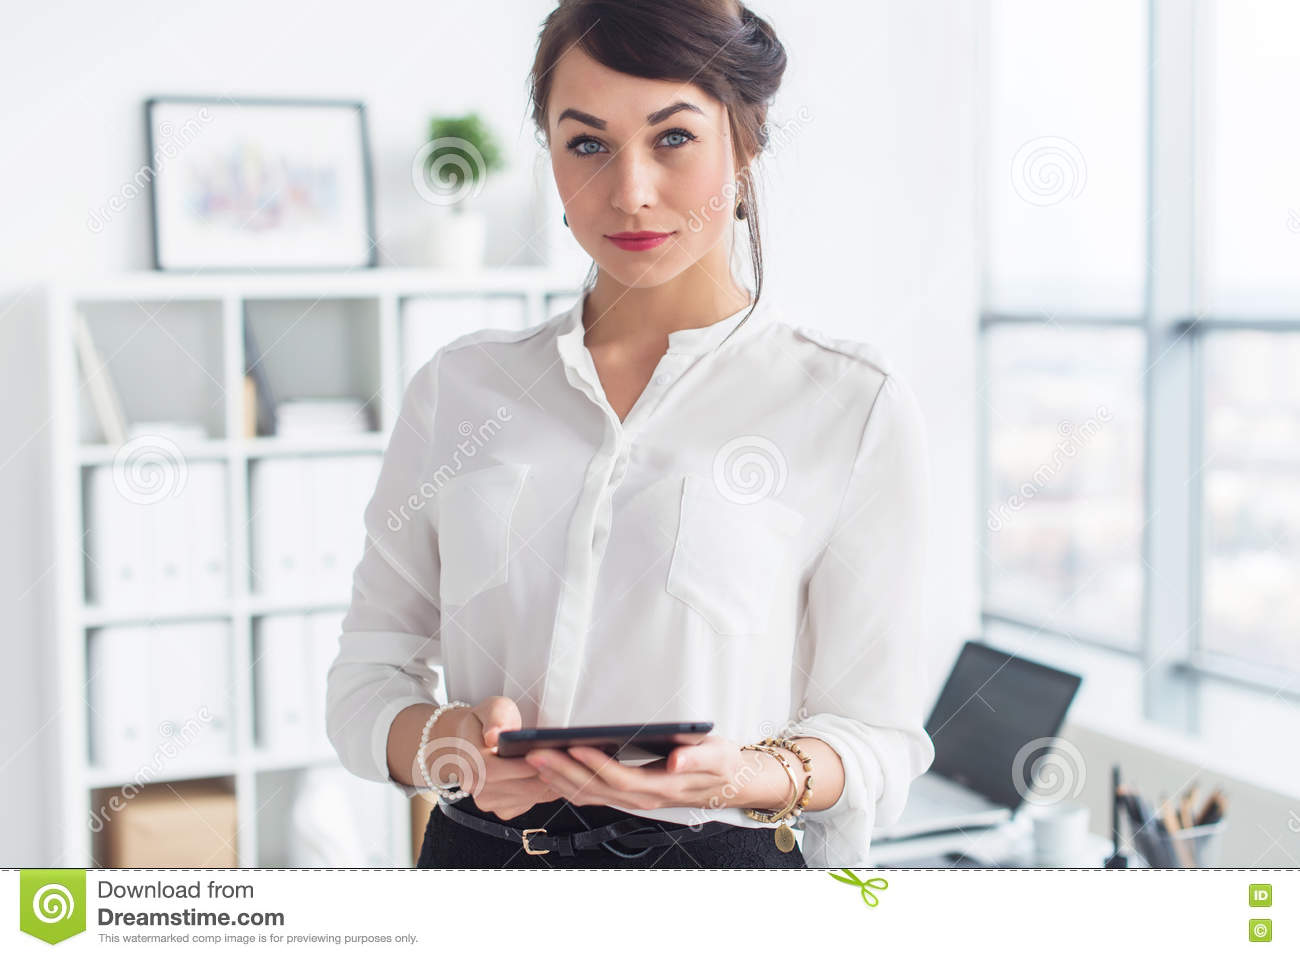 Beautiful businesswoman standing in office, holding notebook, planning meetings for the work day, looking at camera.